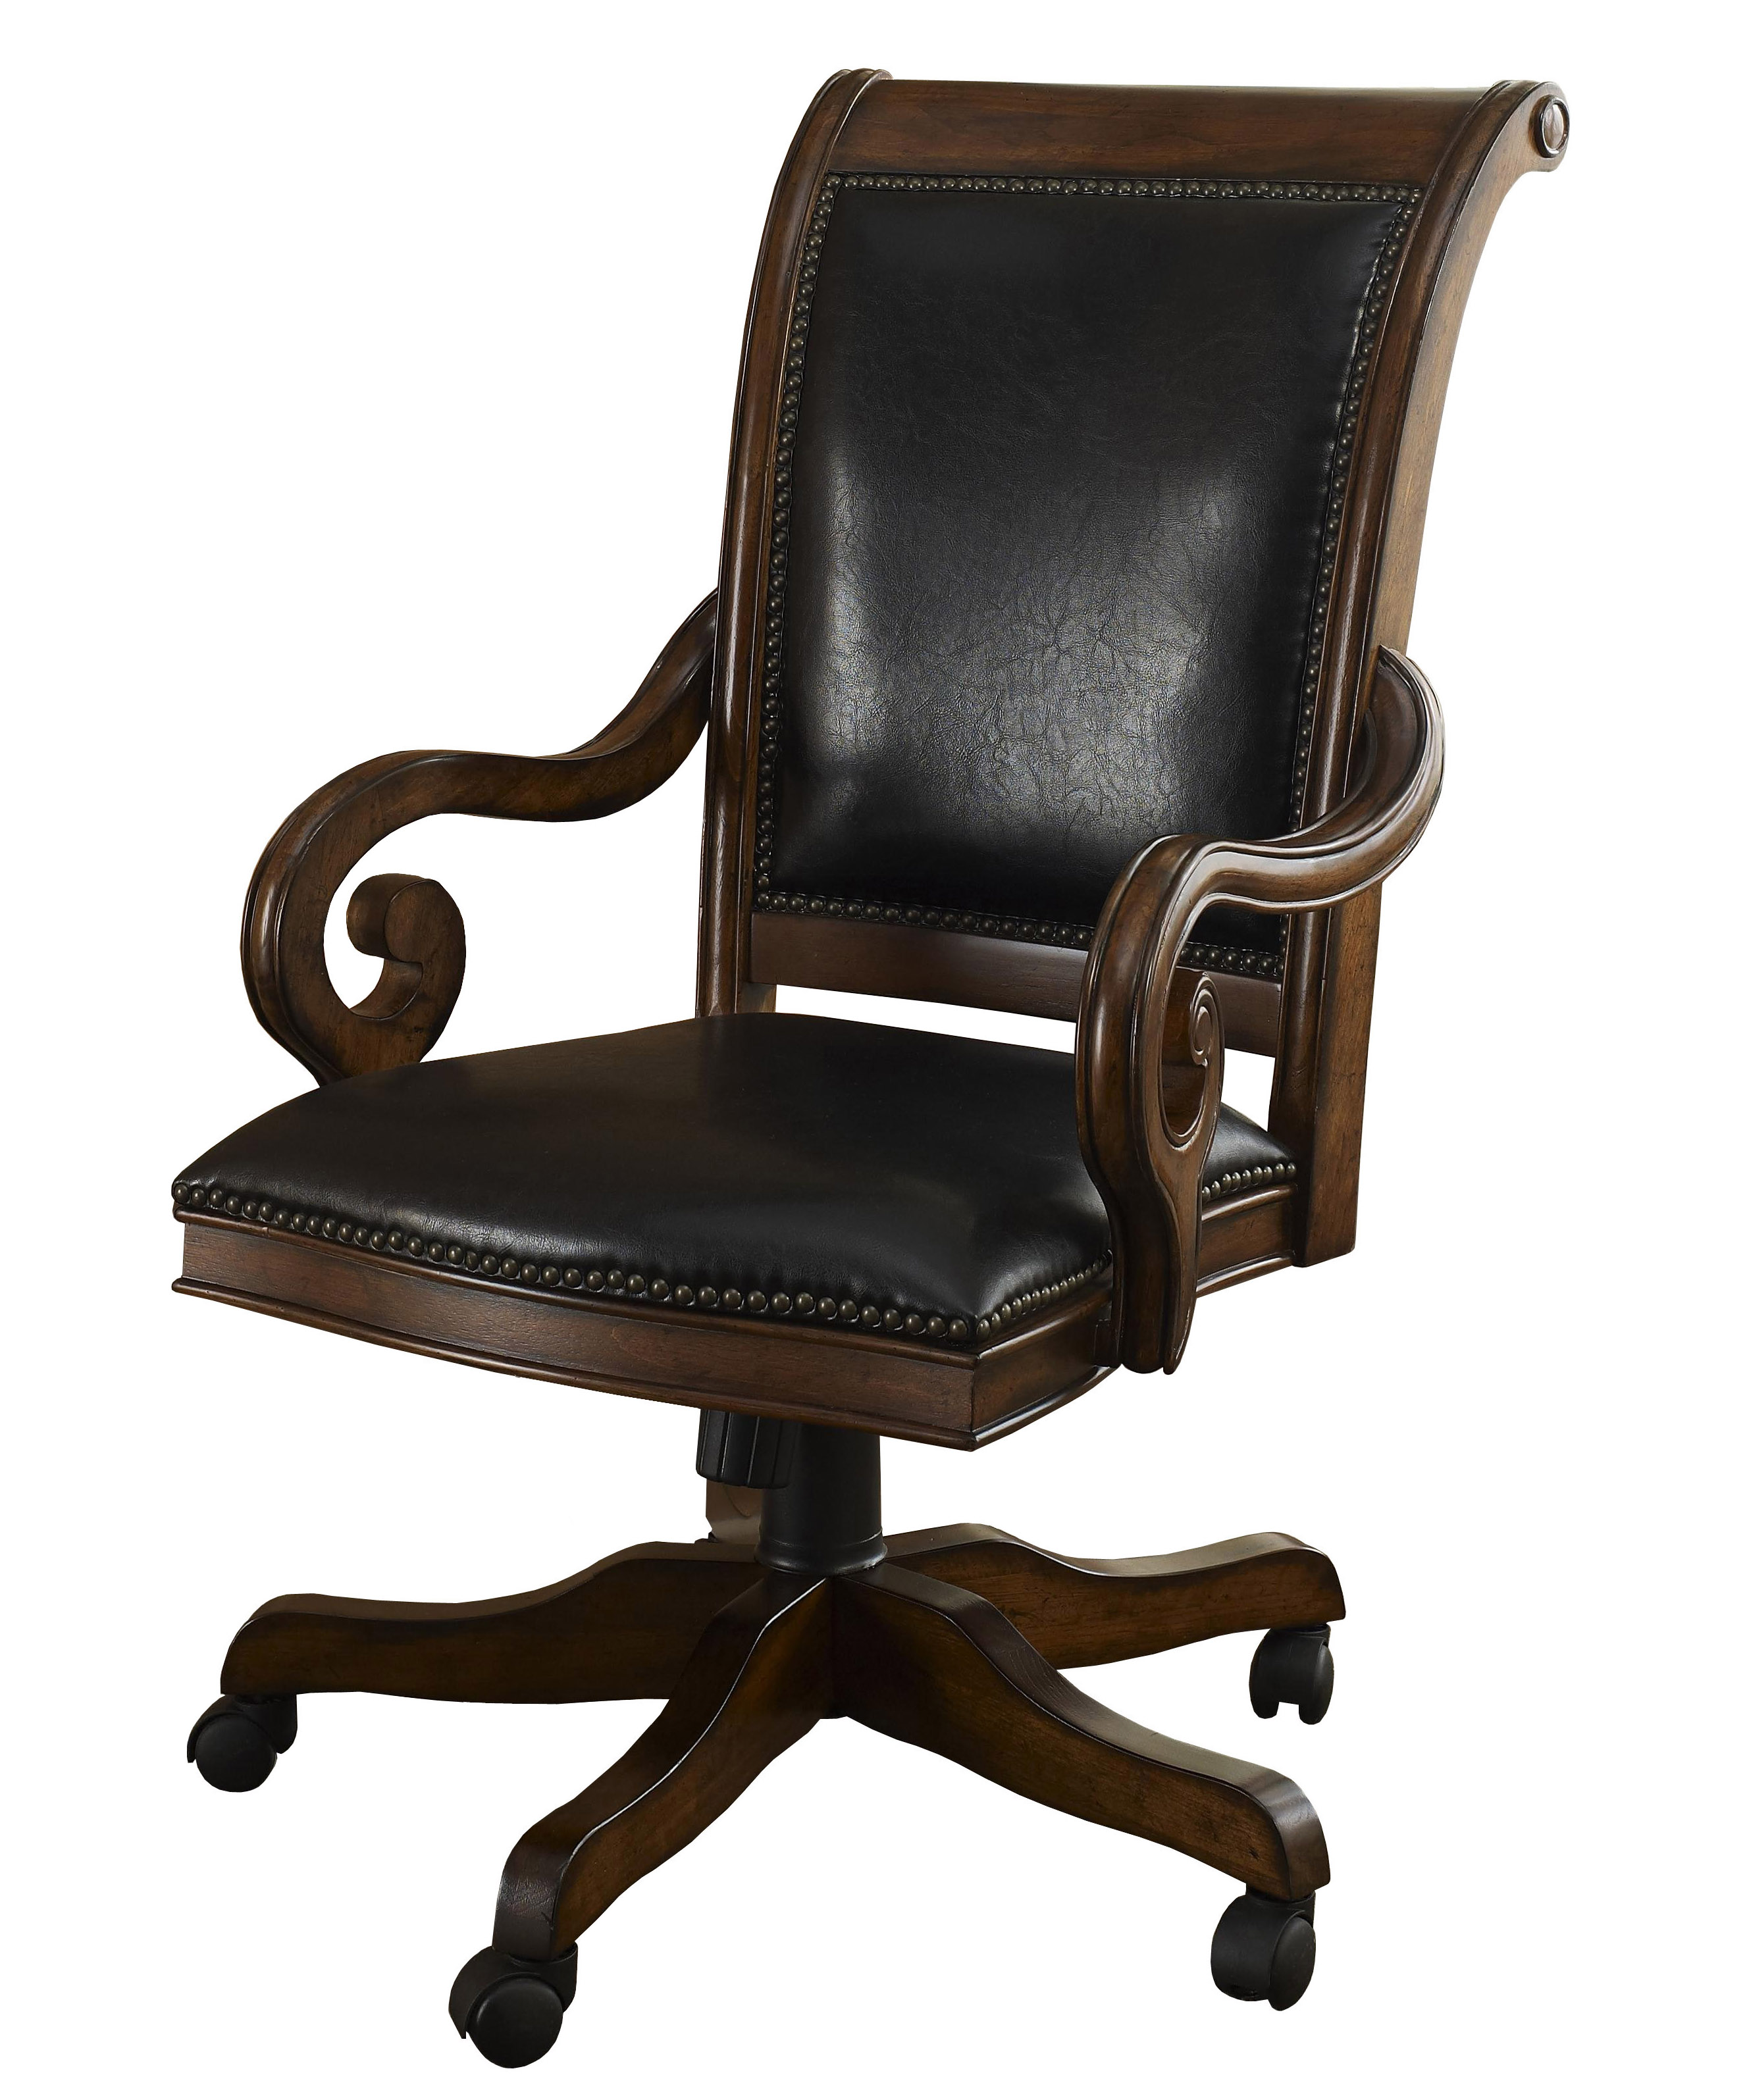 details about devonshire walnut leather office desk chair